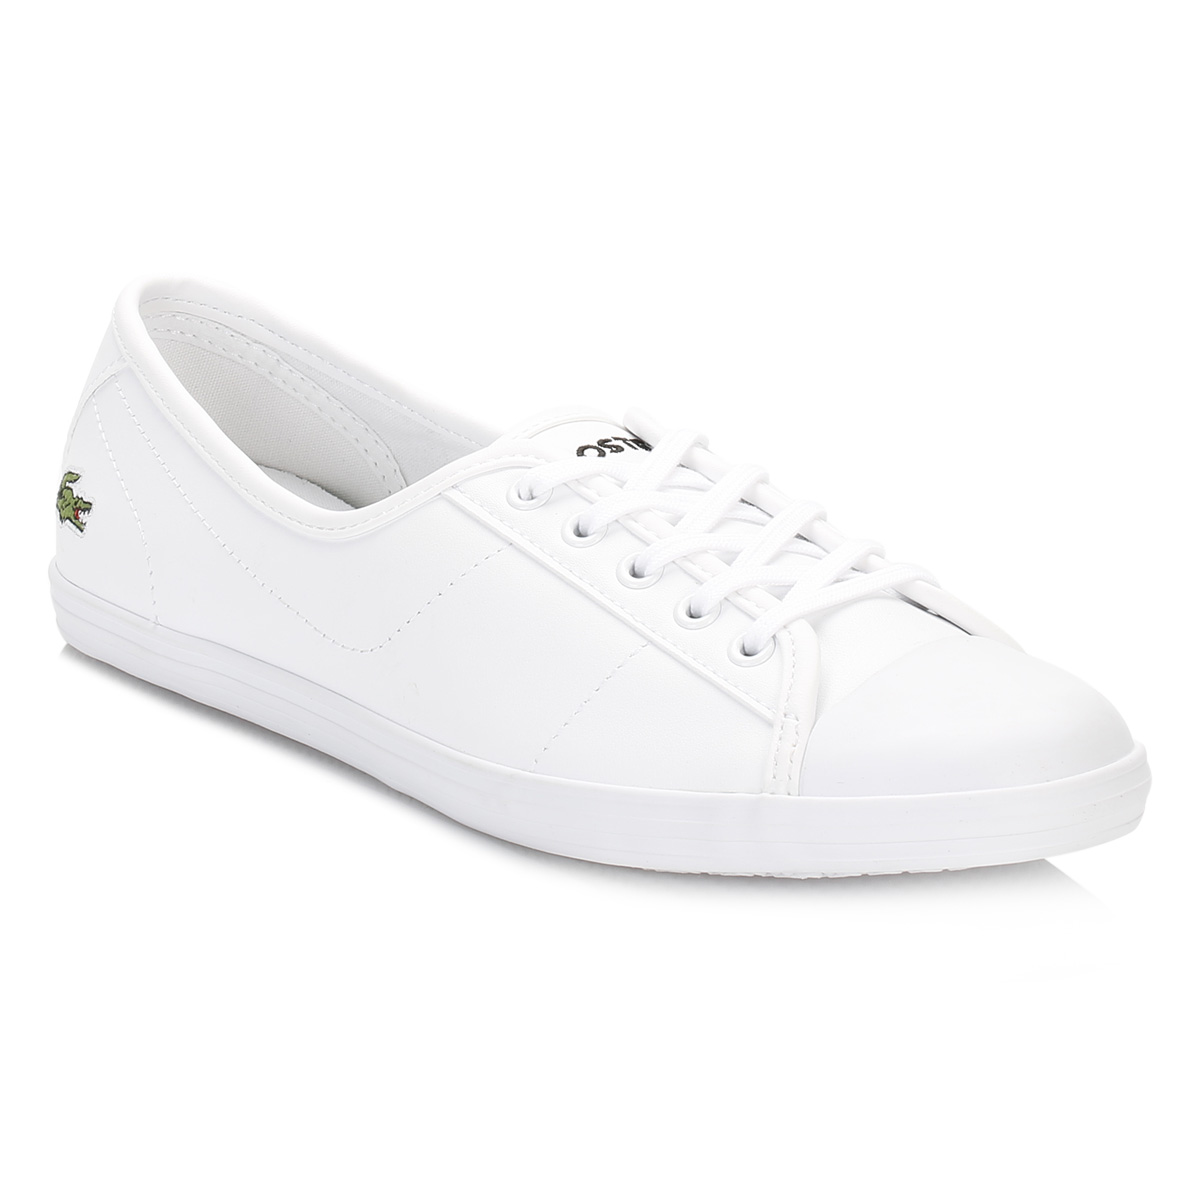 05f1e184b144 Lacoste Womens Trainers White Ziane BL 1 SPW Leather Lace Up Shoes Casual  Flats